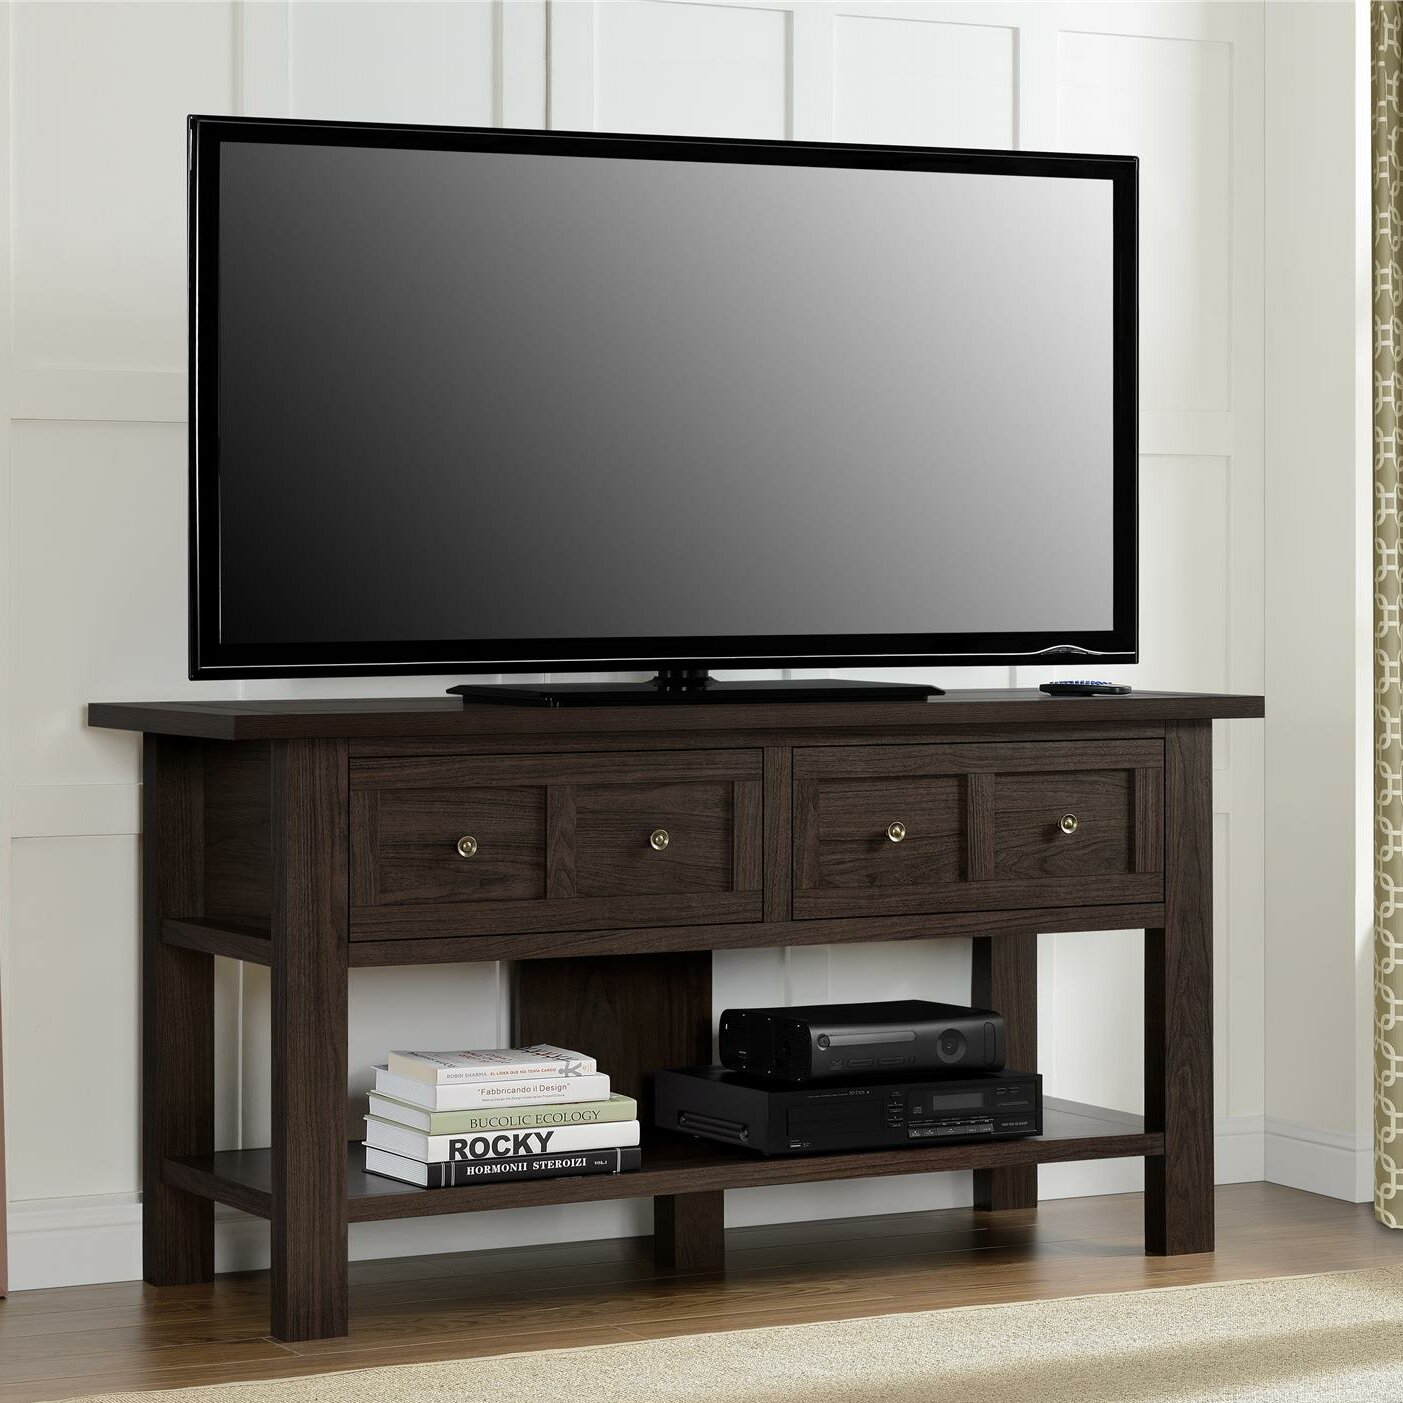 august grove loanne tv stand reviews wayfair. Black Bedroom Furniture Sets. Home Design Ideas